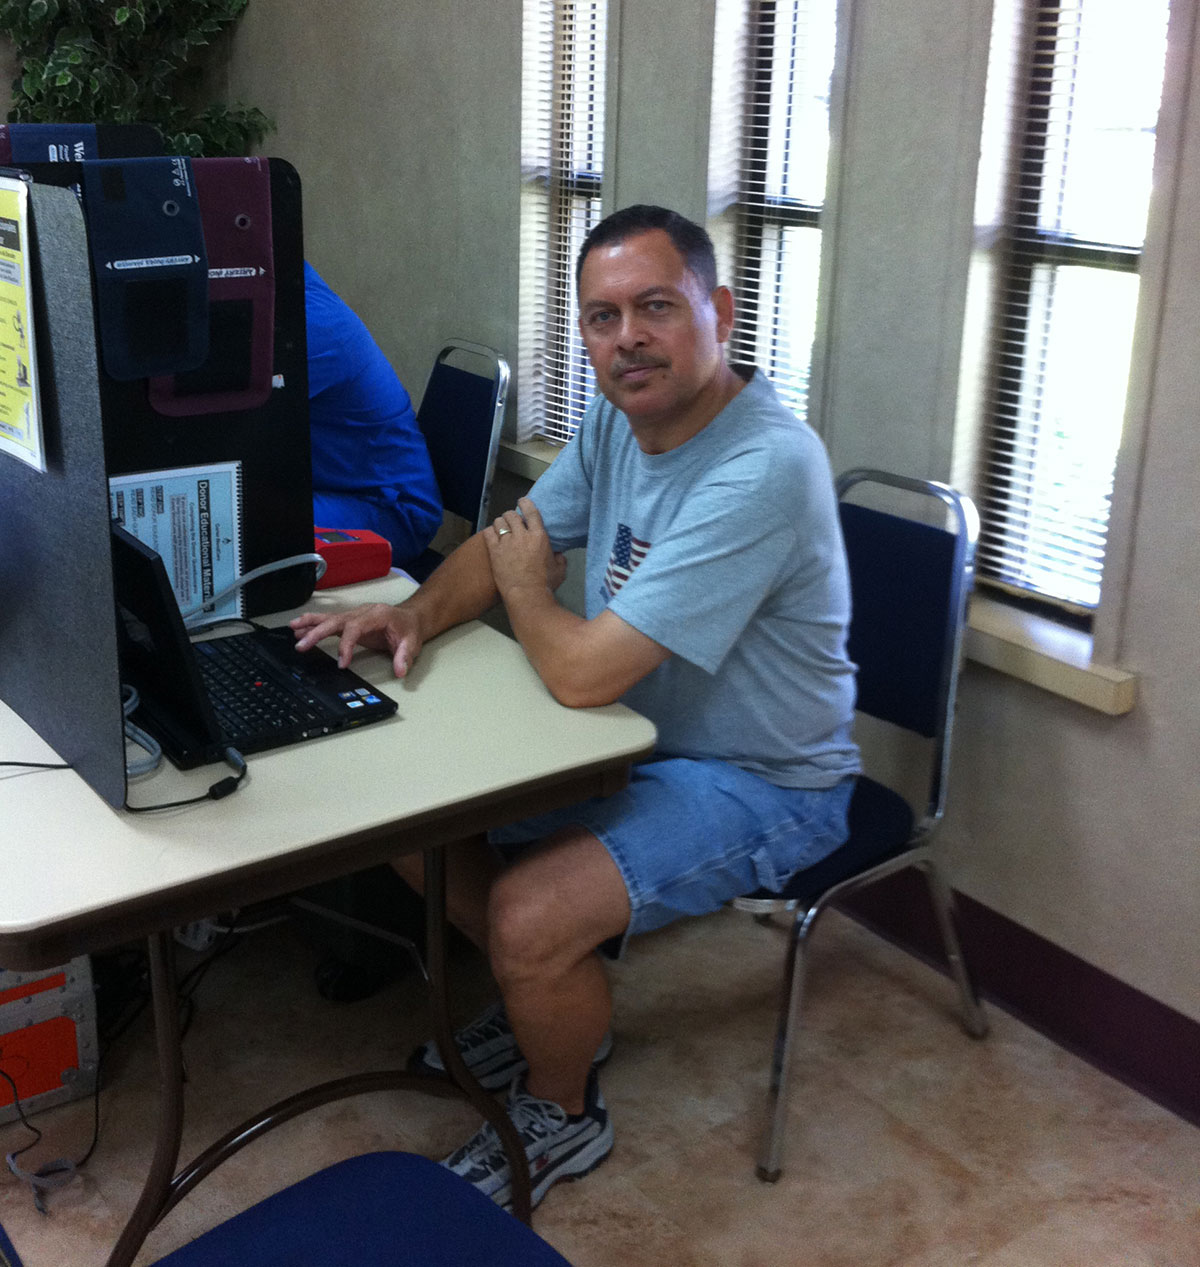 john-espree-at-blood-drive-computer